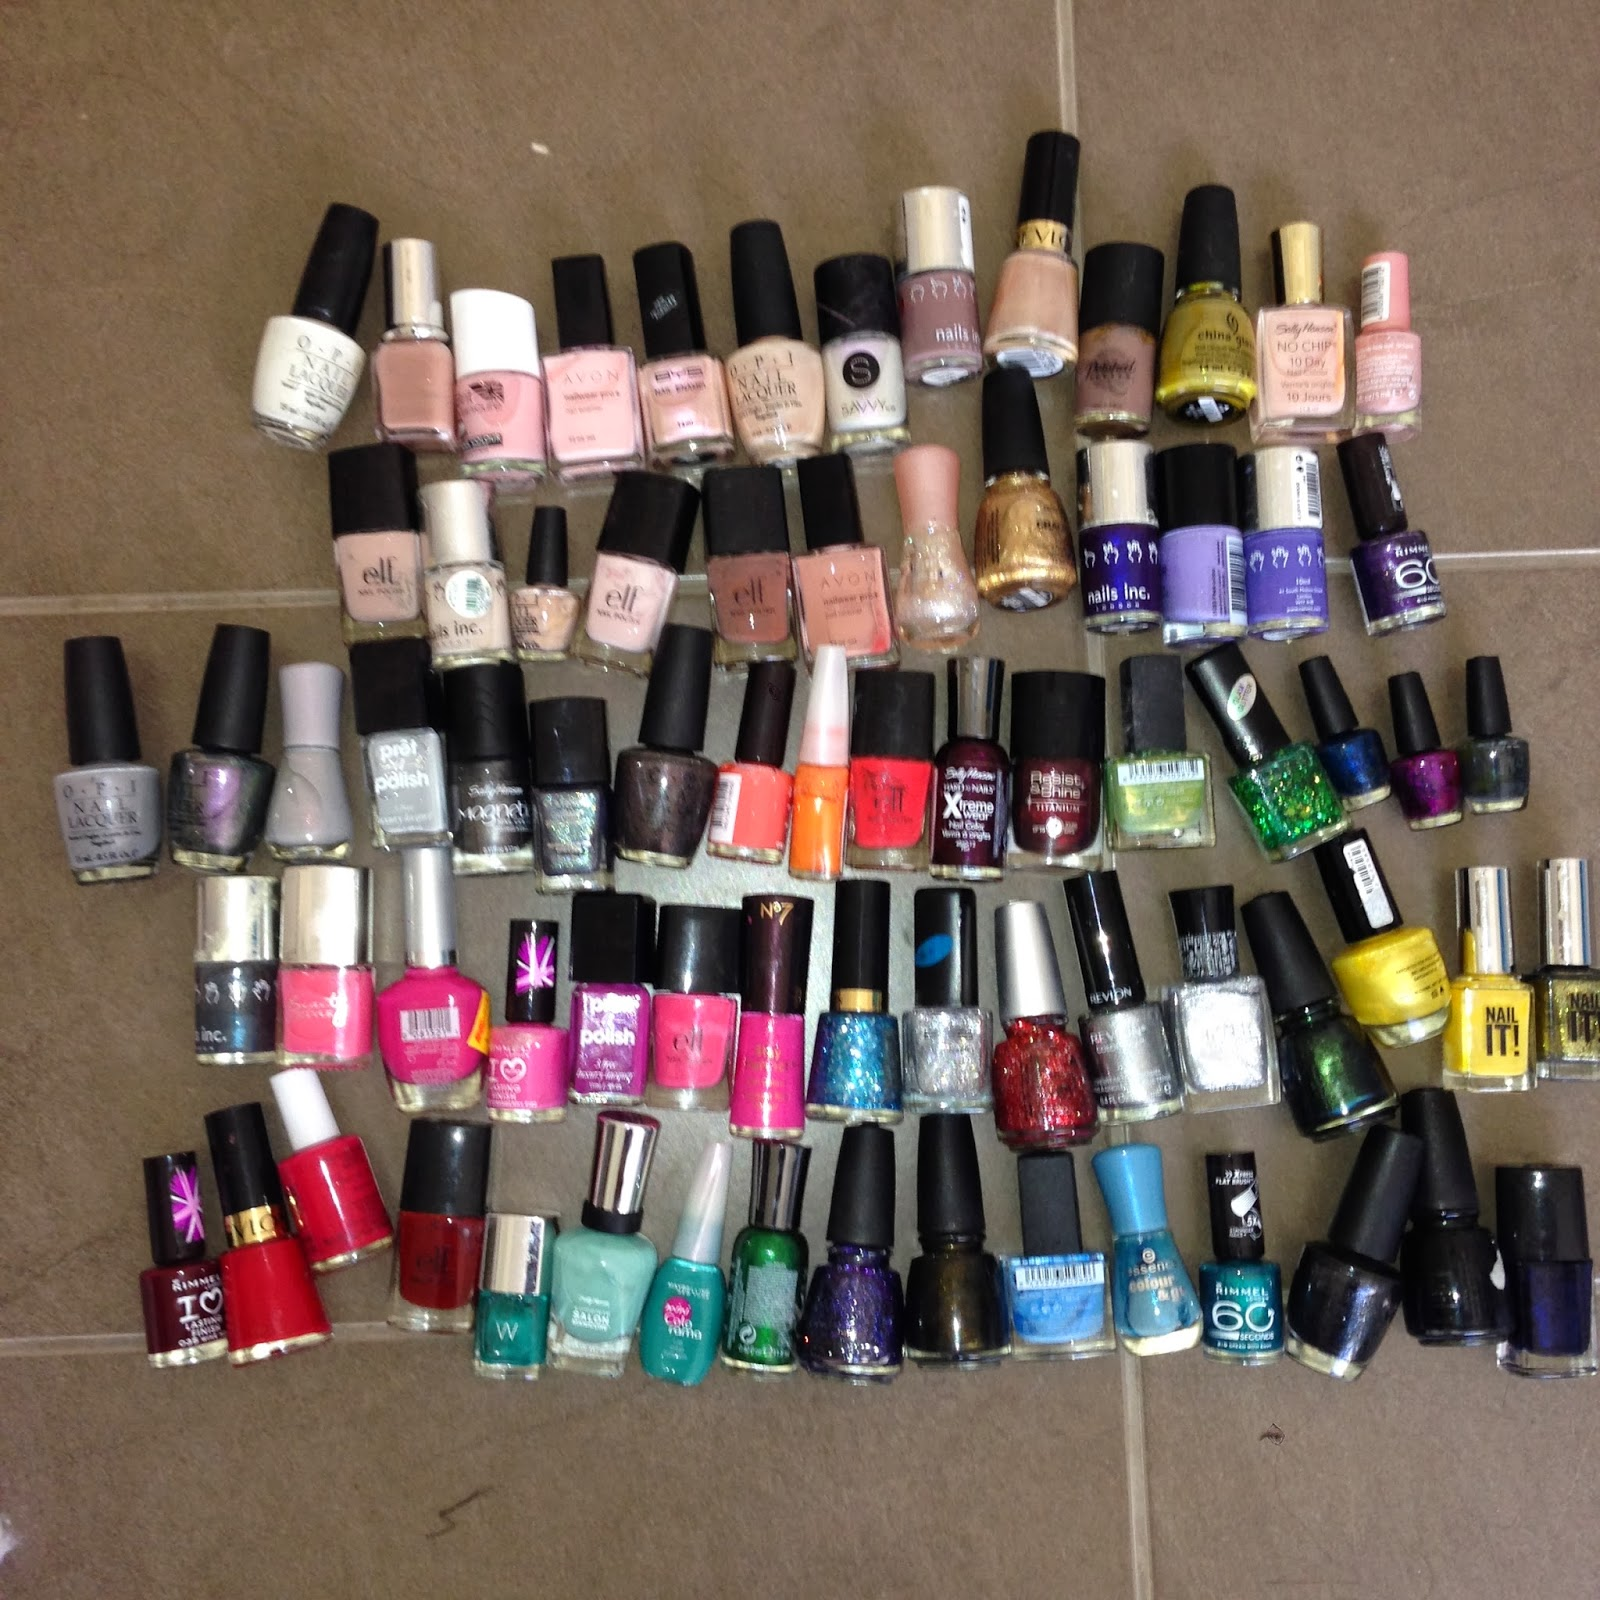 TOO MANY NAIL POLISHES TO COUNT